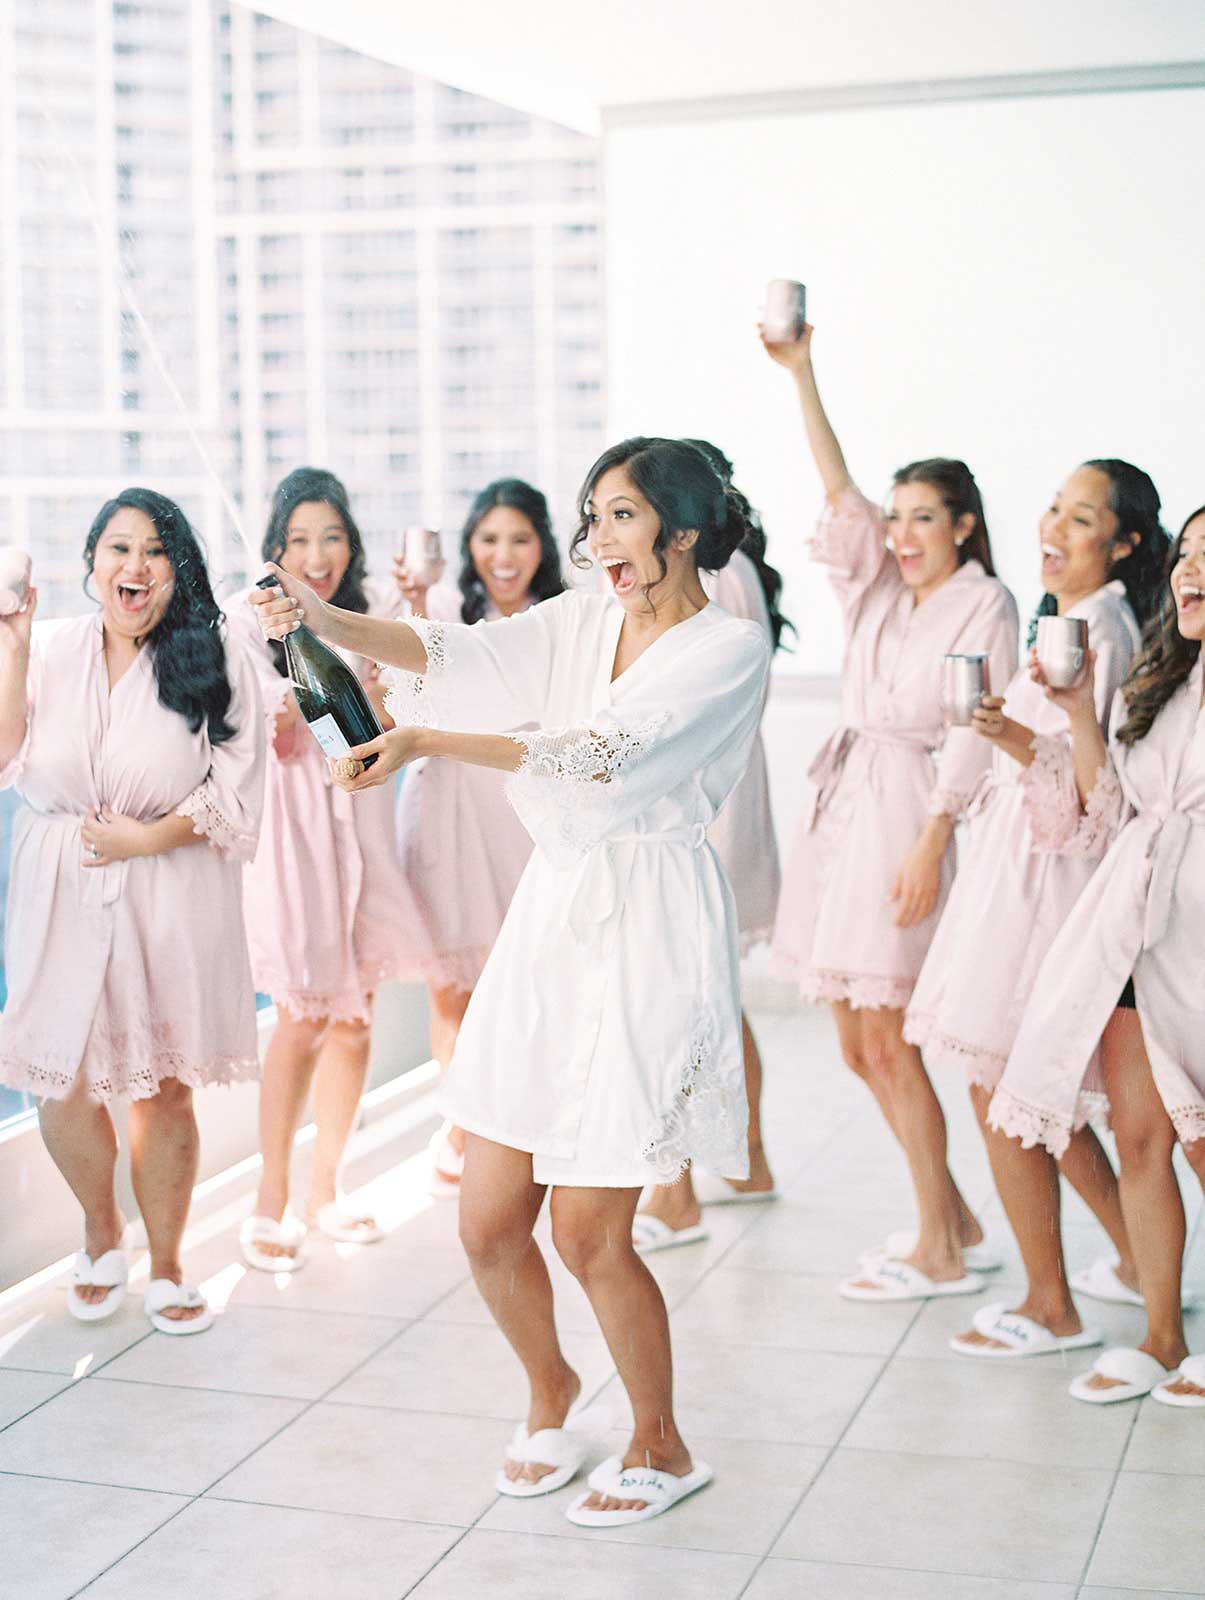 bride popping champagne with bridesmaids on balcony wearing their matching robes and slippers.